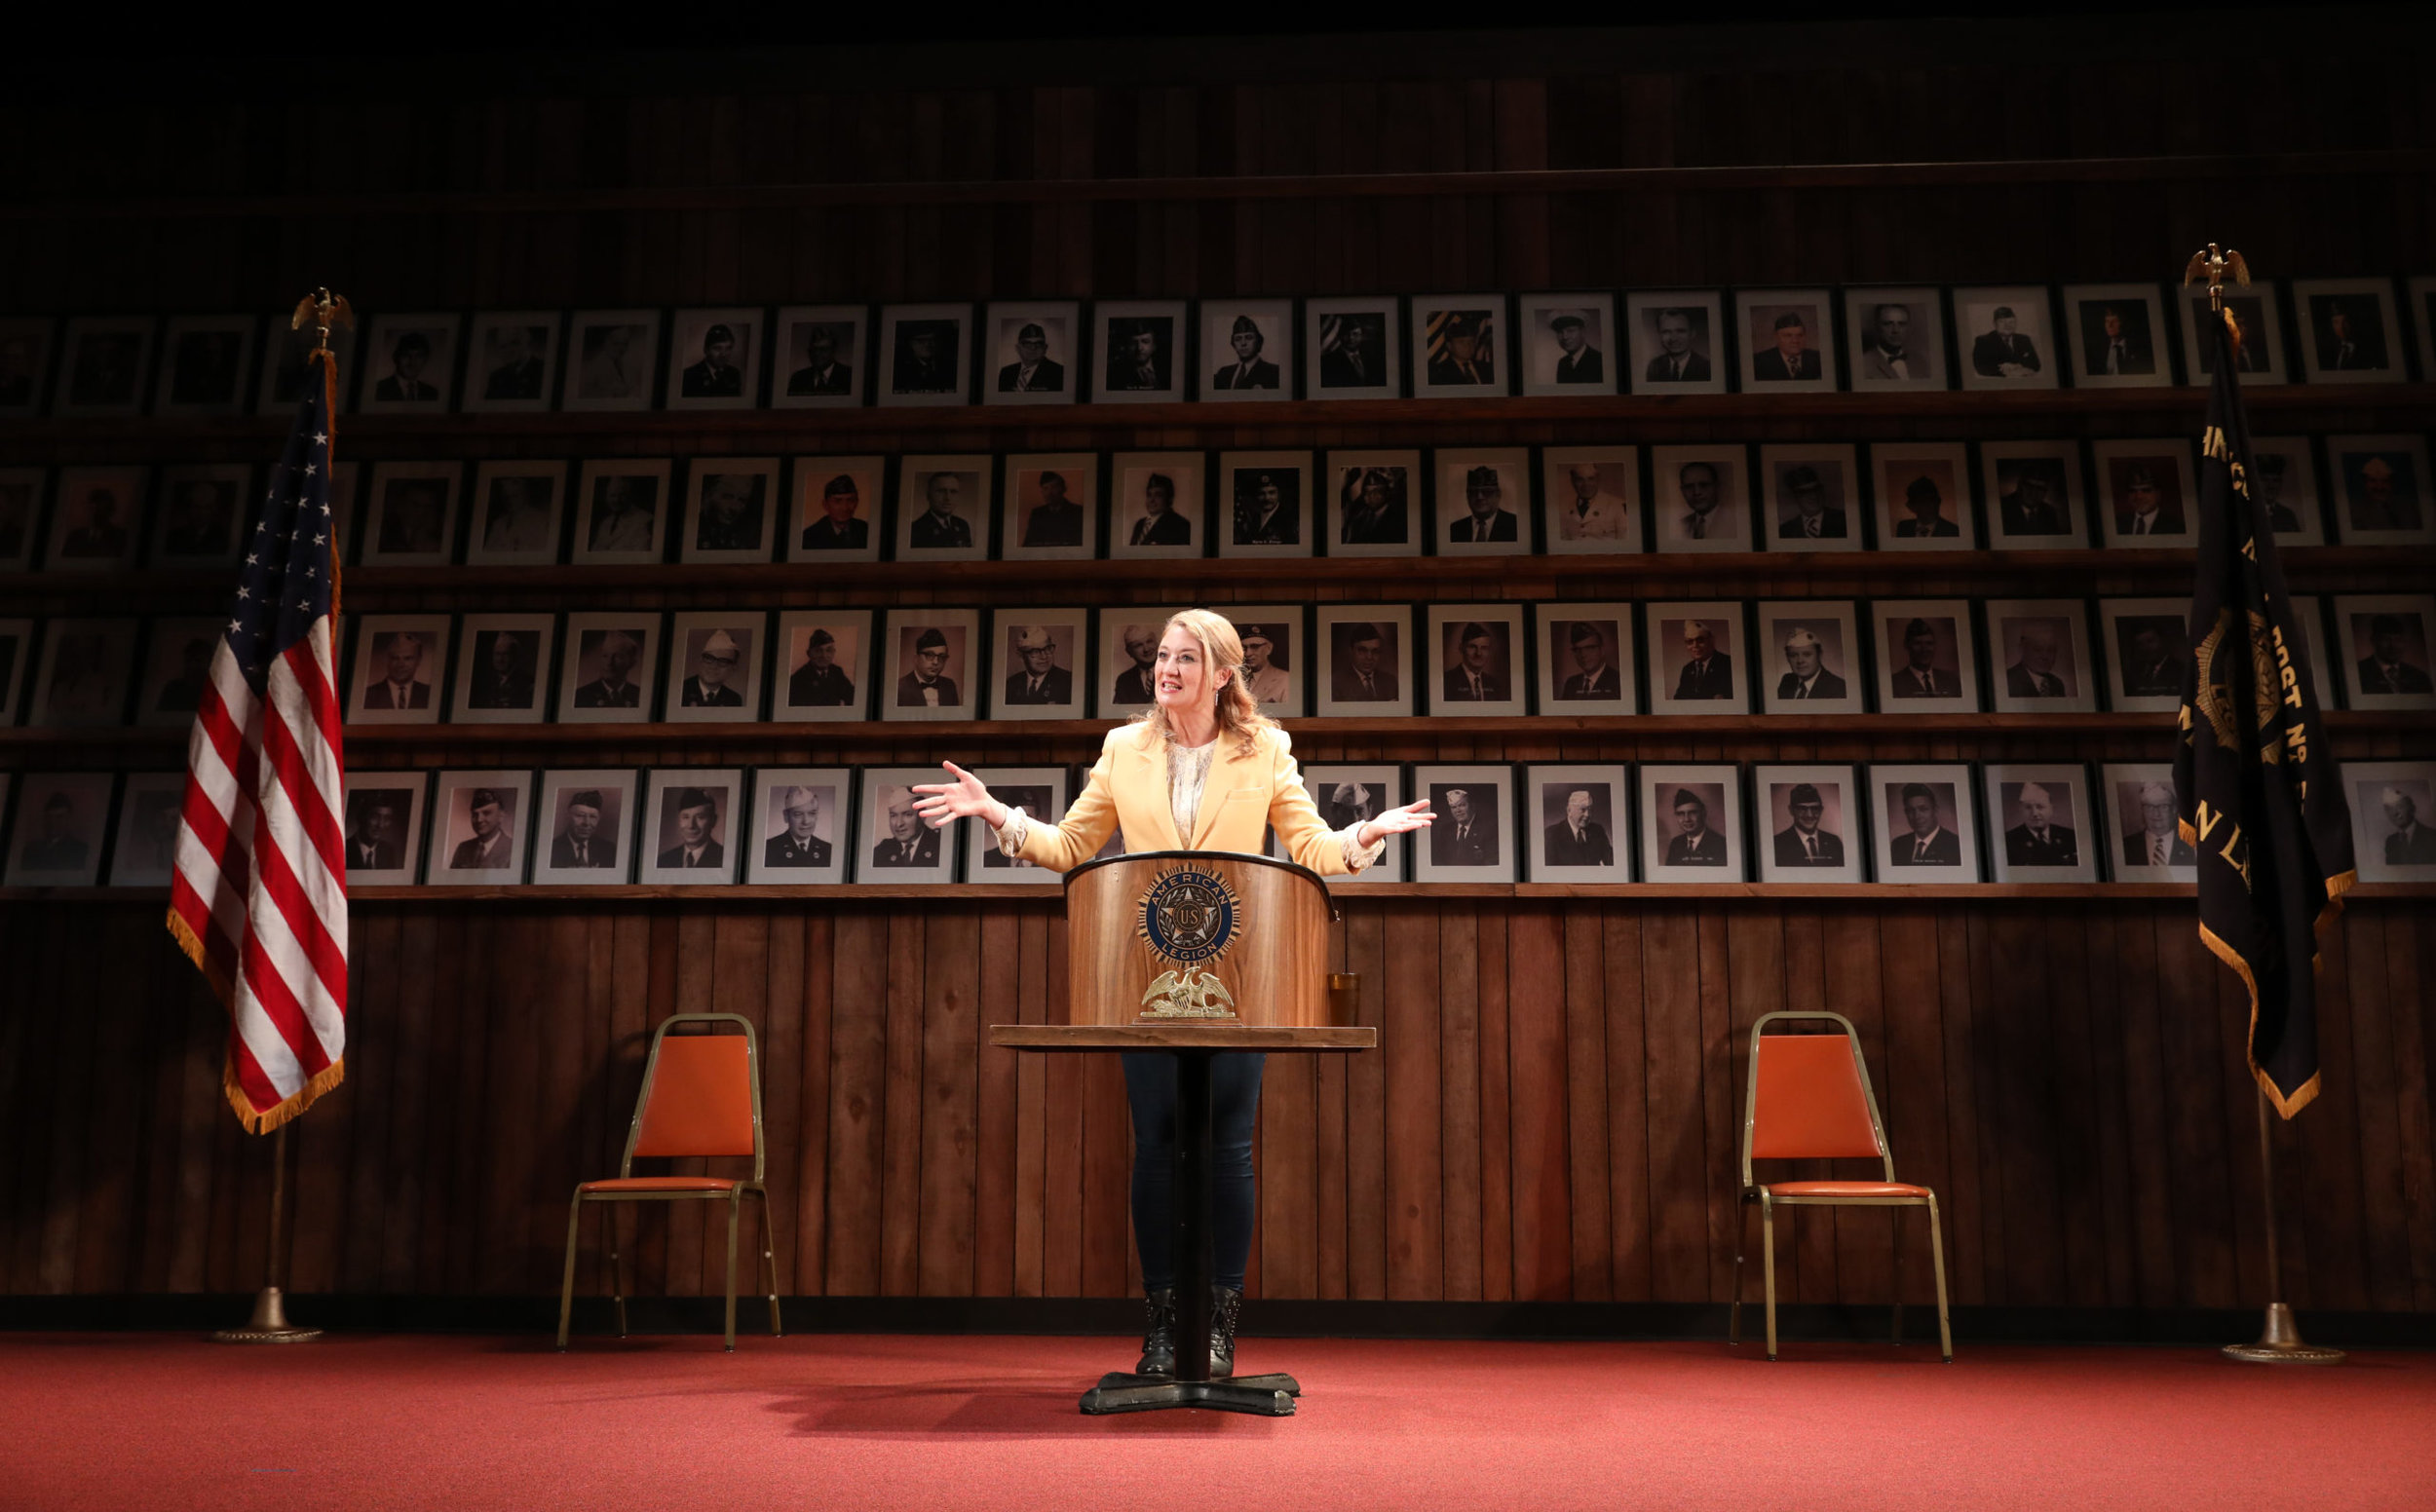 Heidi-Schreck-in-WHAT-THE-CONSTITUTION-MEANS-TO-ME-at-New-York-Theatre-Workshop-Photo-by-Joan-Marcus-1-2560x1589.jpg